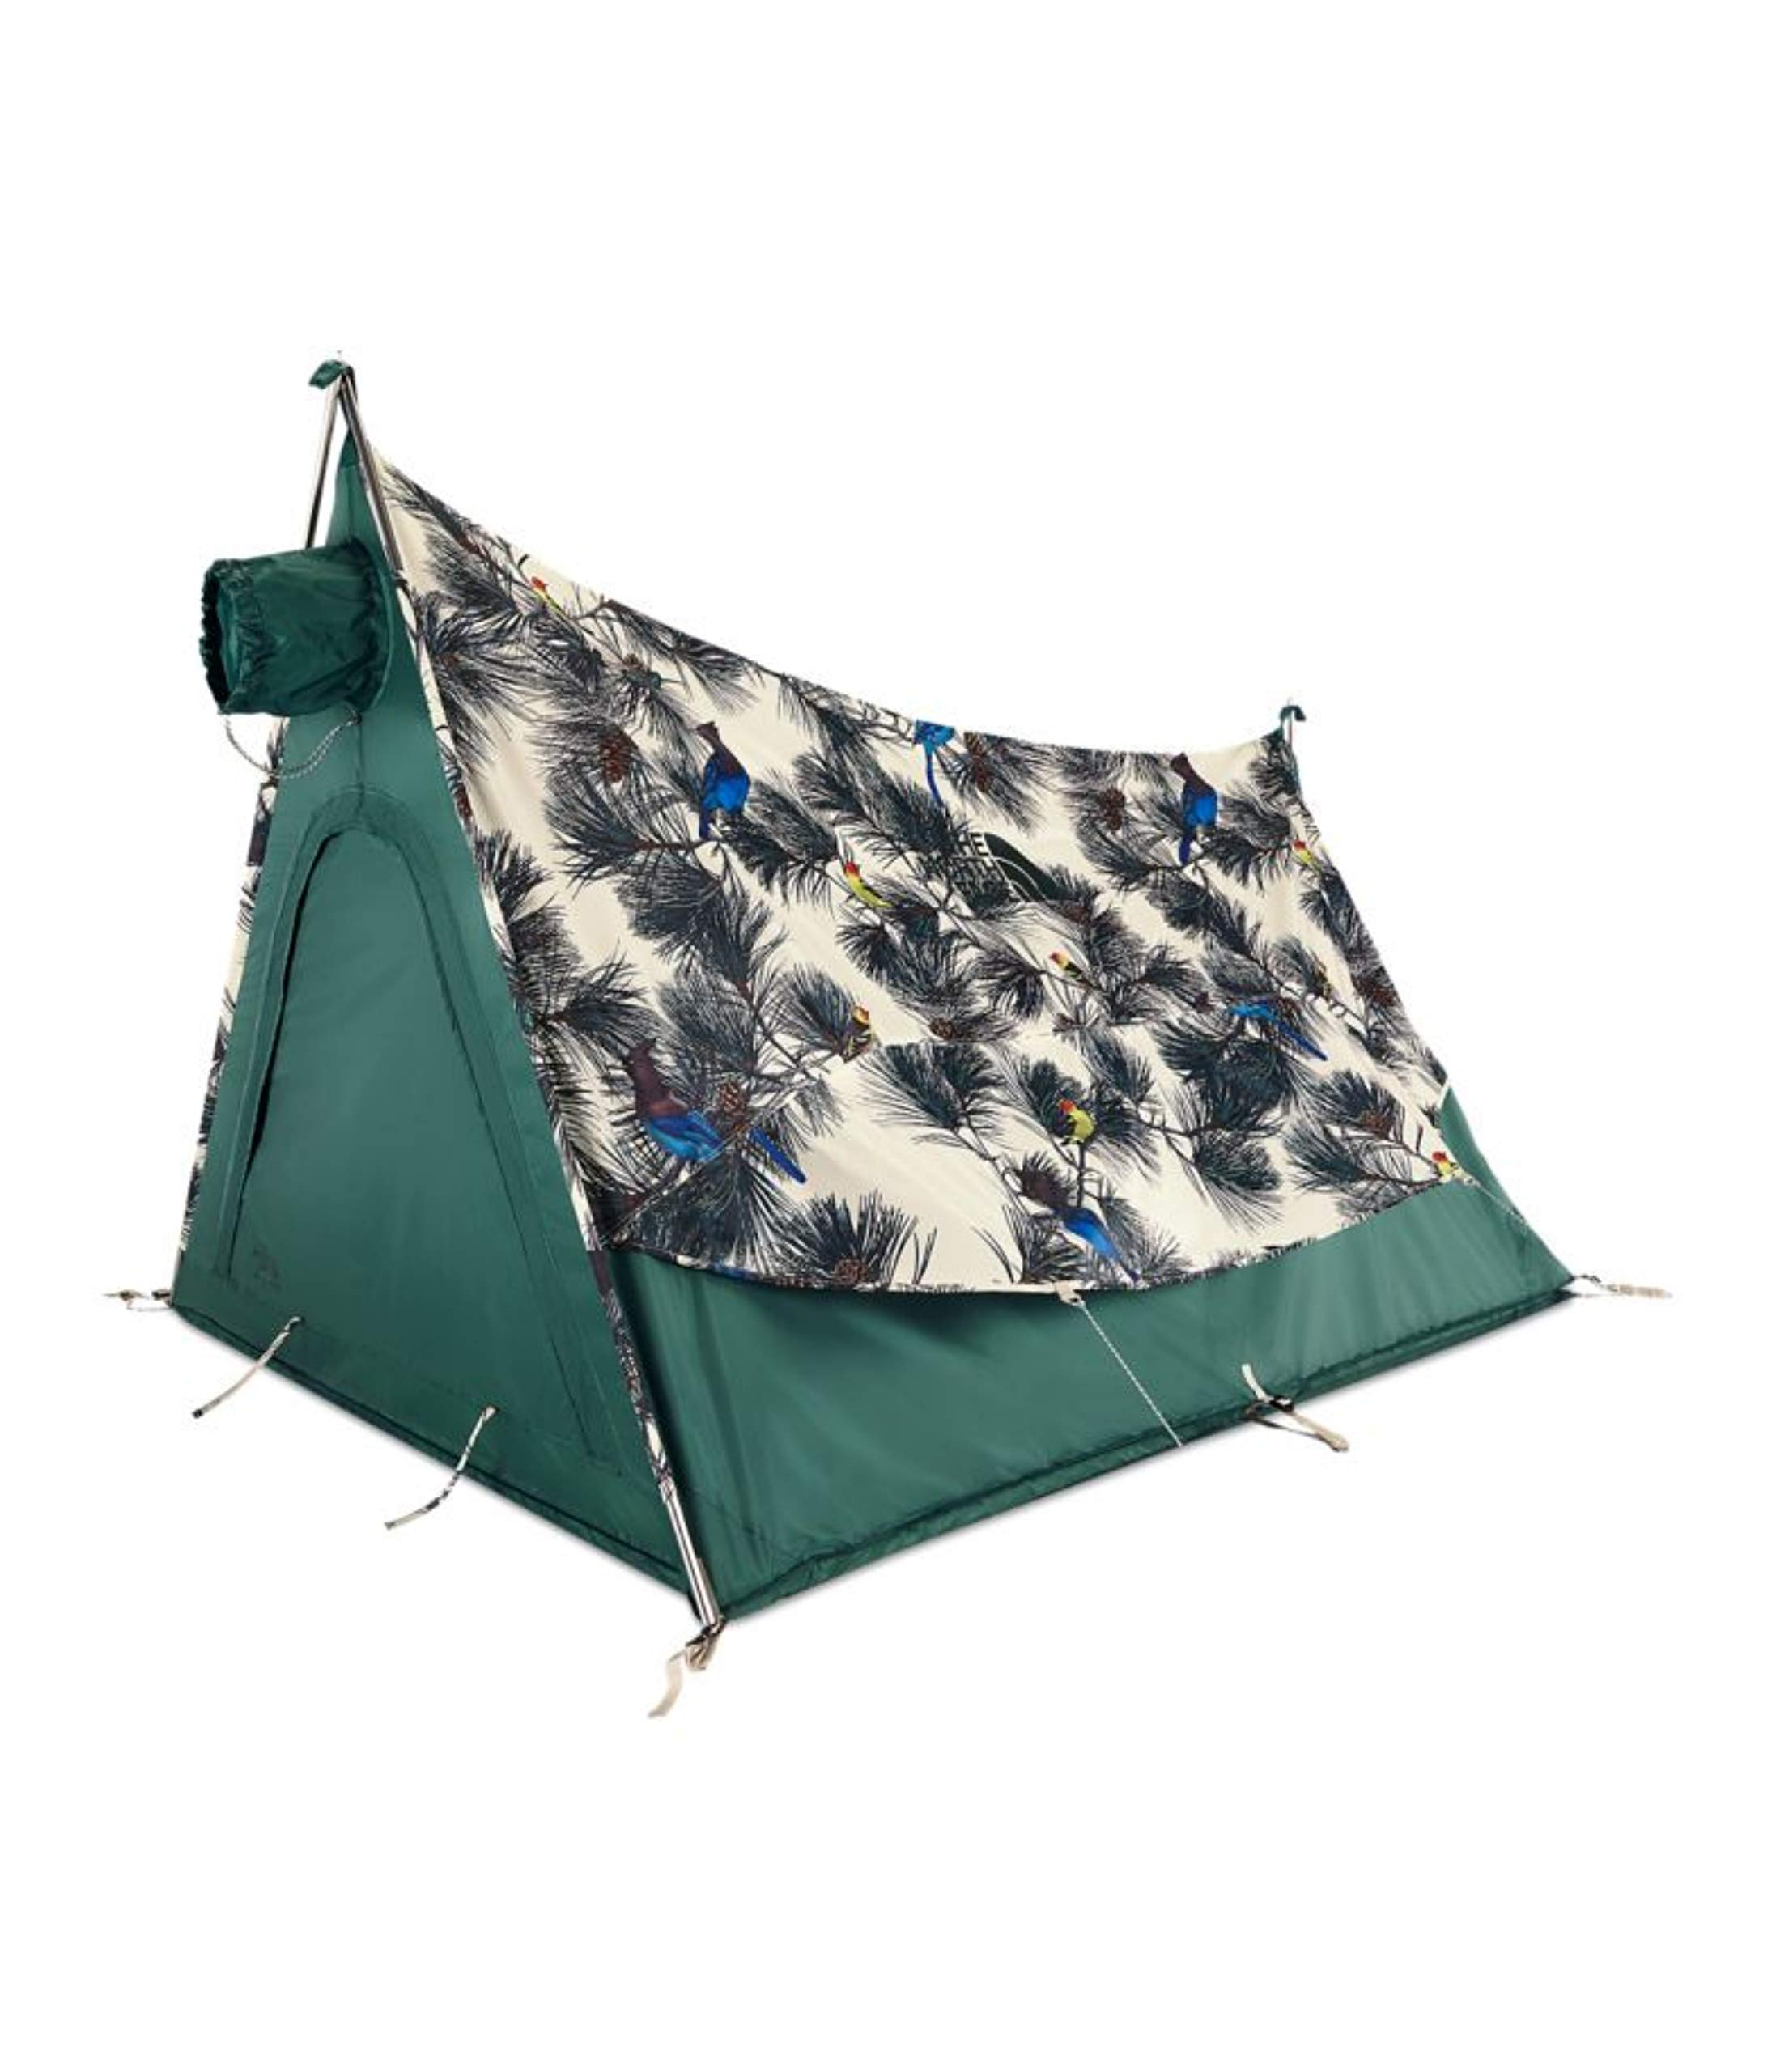 The-North-Face-Tuolumne-2-Camping-Tent